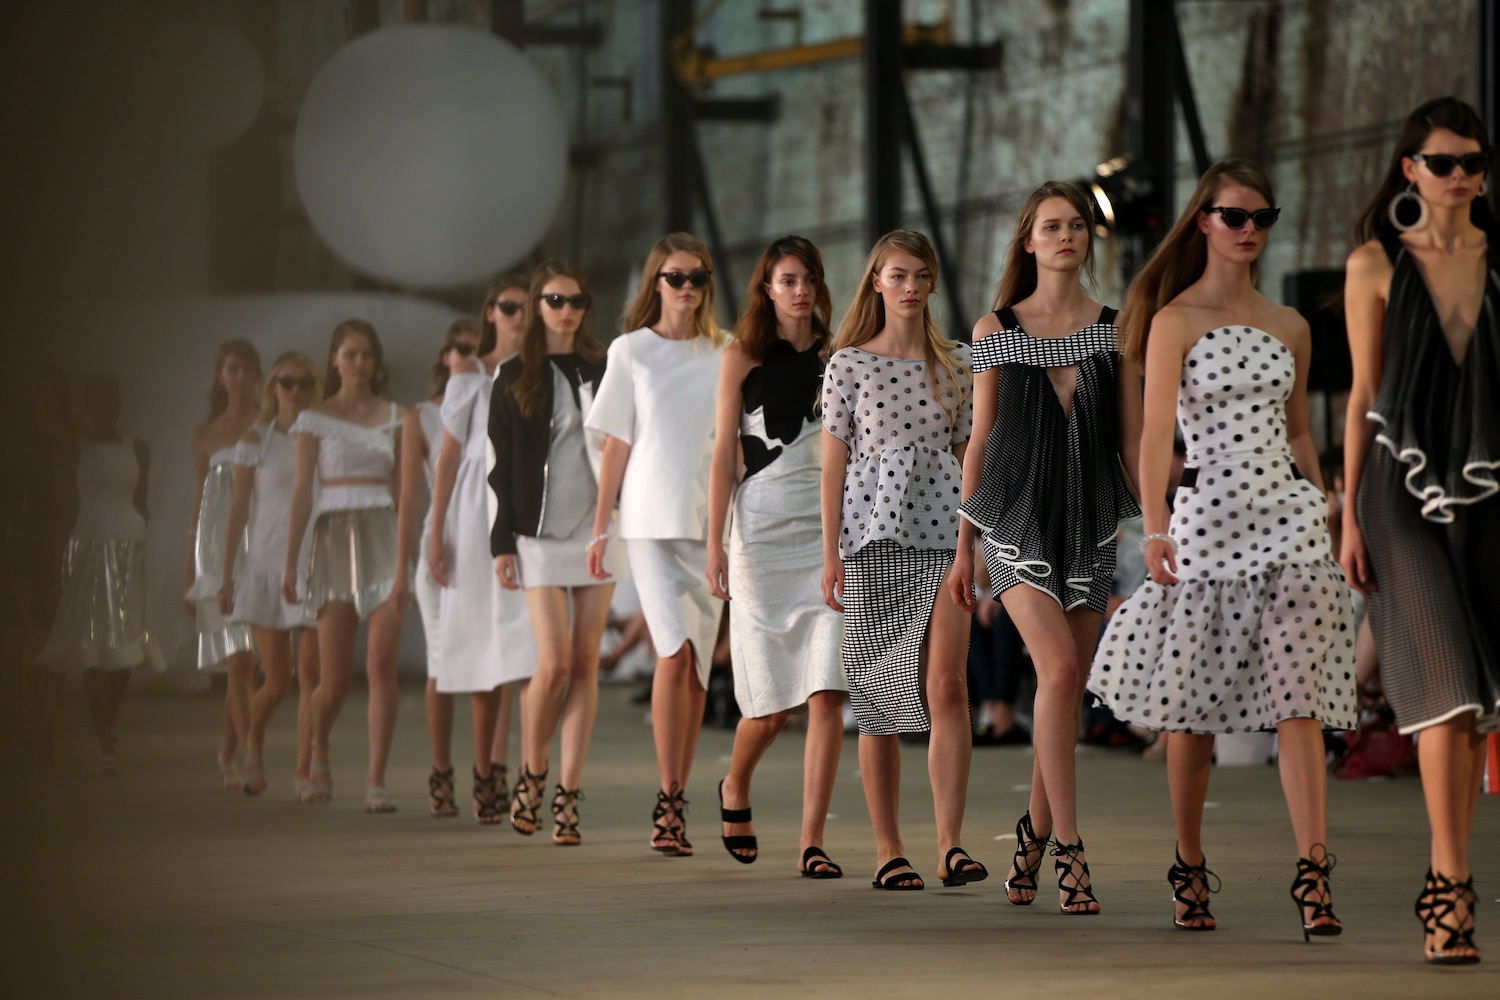 SYDNEY, AUSTRALIA - MAY 17: Models walk the runway during the By Johnny show at Mercedes-Benz Fashion Week Resort 17 Collections at Blacksmith's Workshop on May 17, 2016 in Sydney, Australia. (Photo by Caroline McCredie/Getty Images)